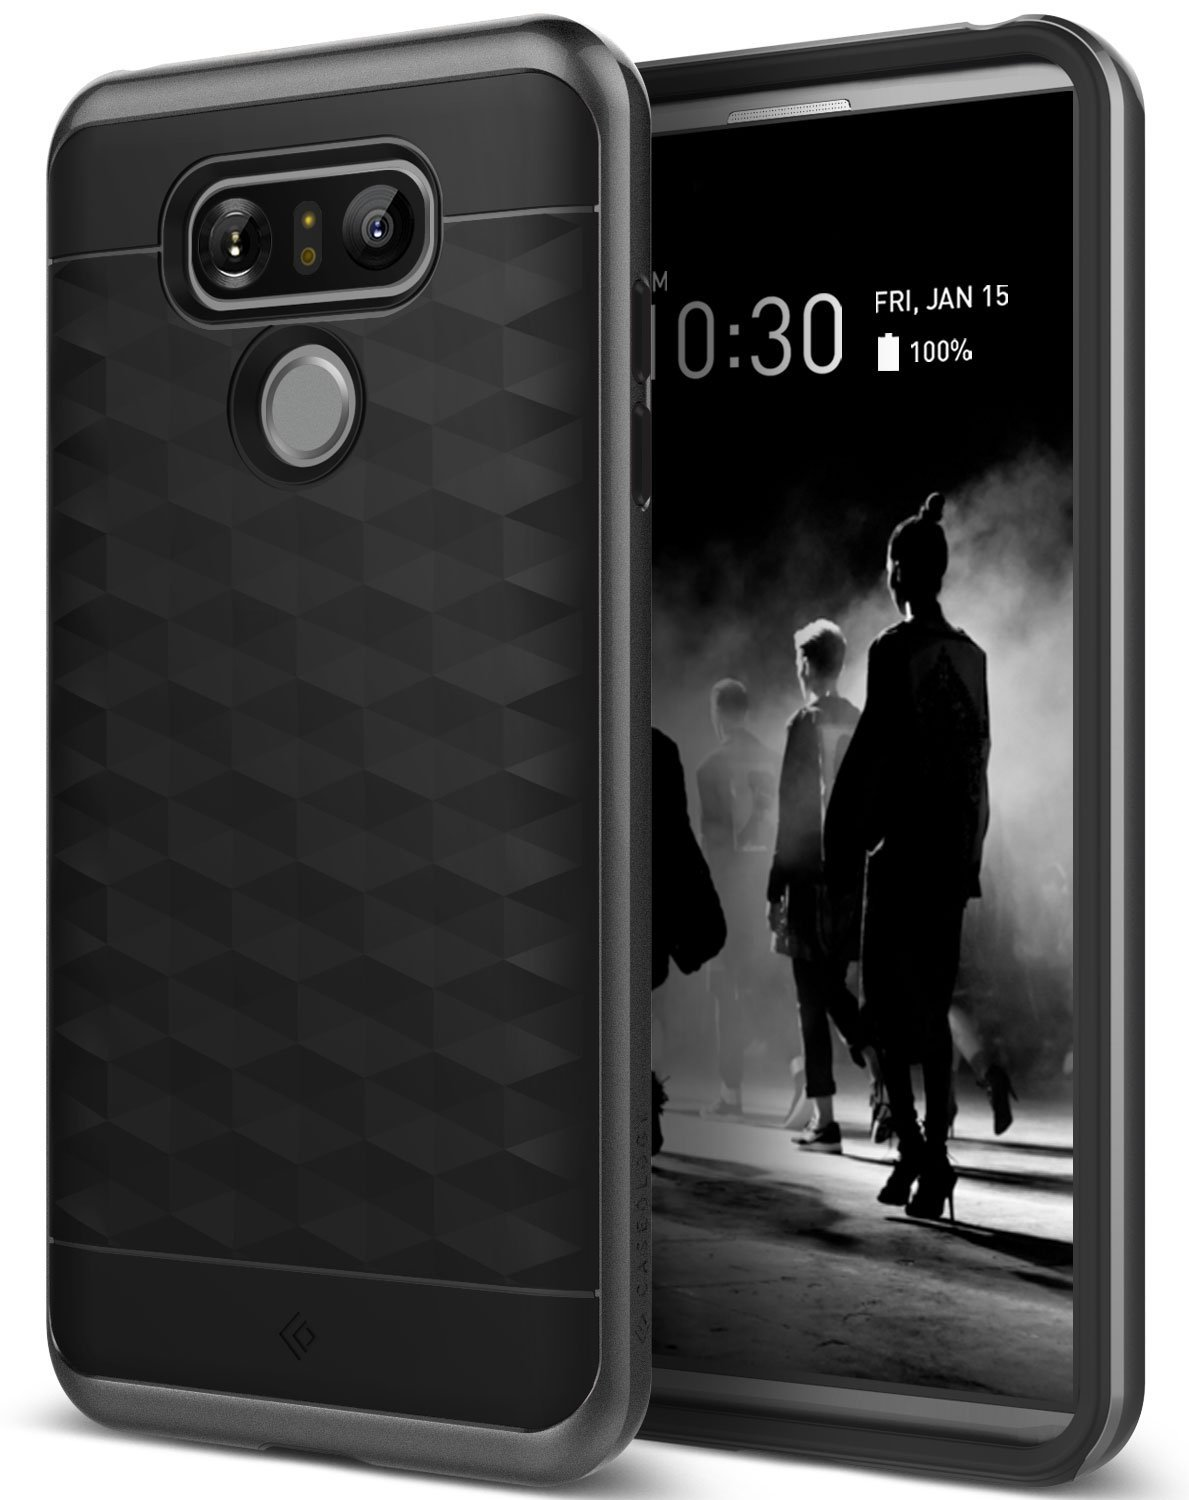 Caseology-Geometric-Slim-LG-G6-Case-best-case-and-covers-for-LG-G6